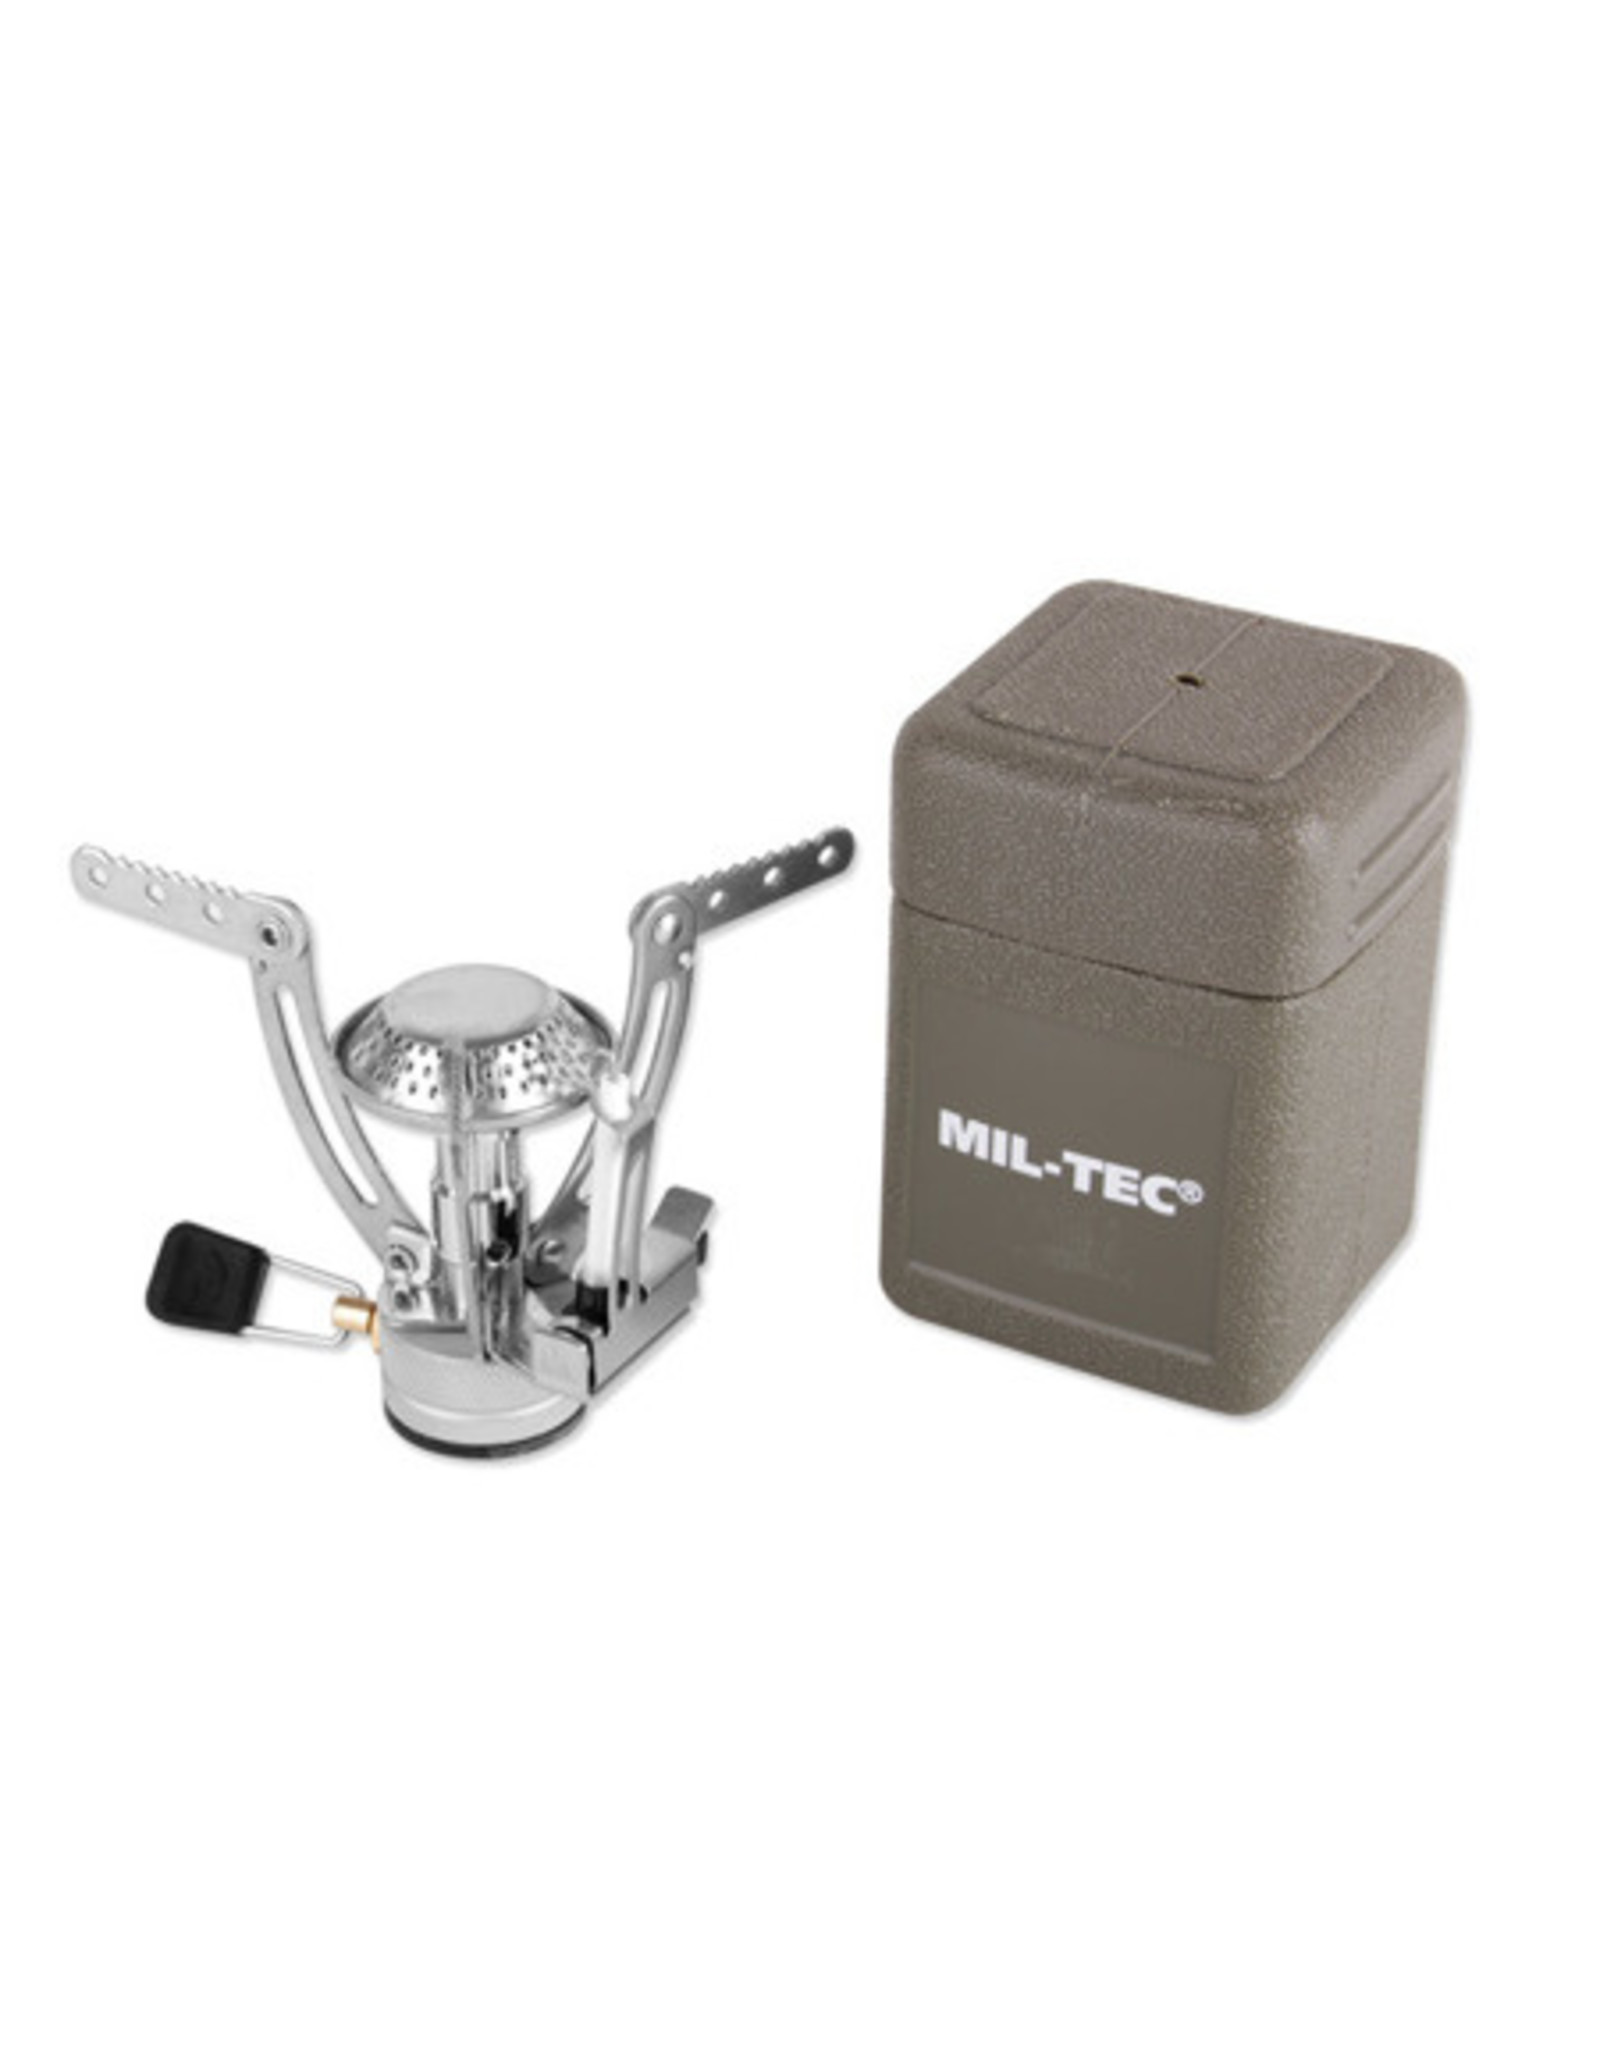 MIL-TEC STAINLESS STEEL FOLDABLE POT STAND-SPIDER BURNER